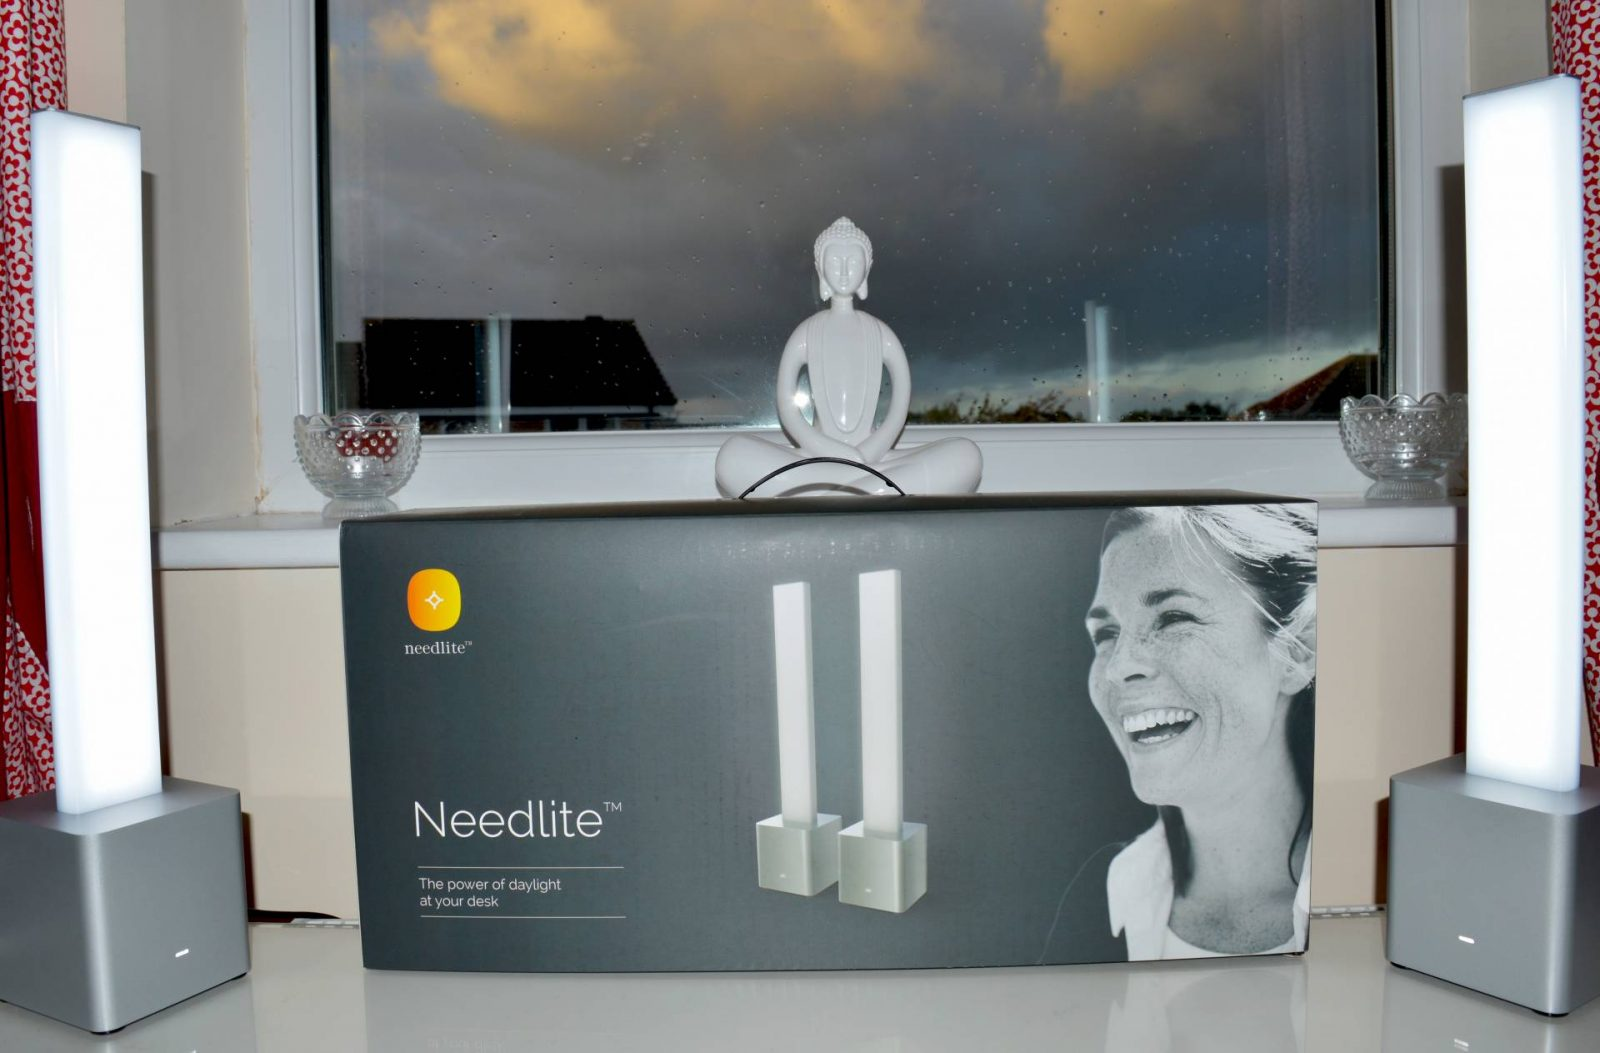 Needlite daylight desk lamps